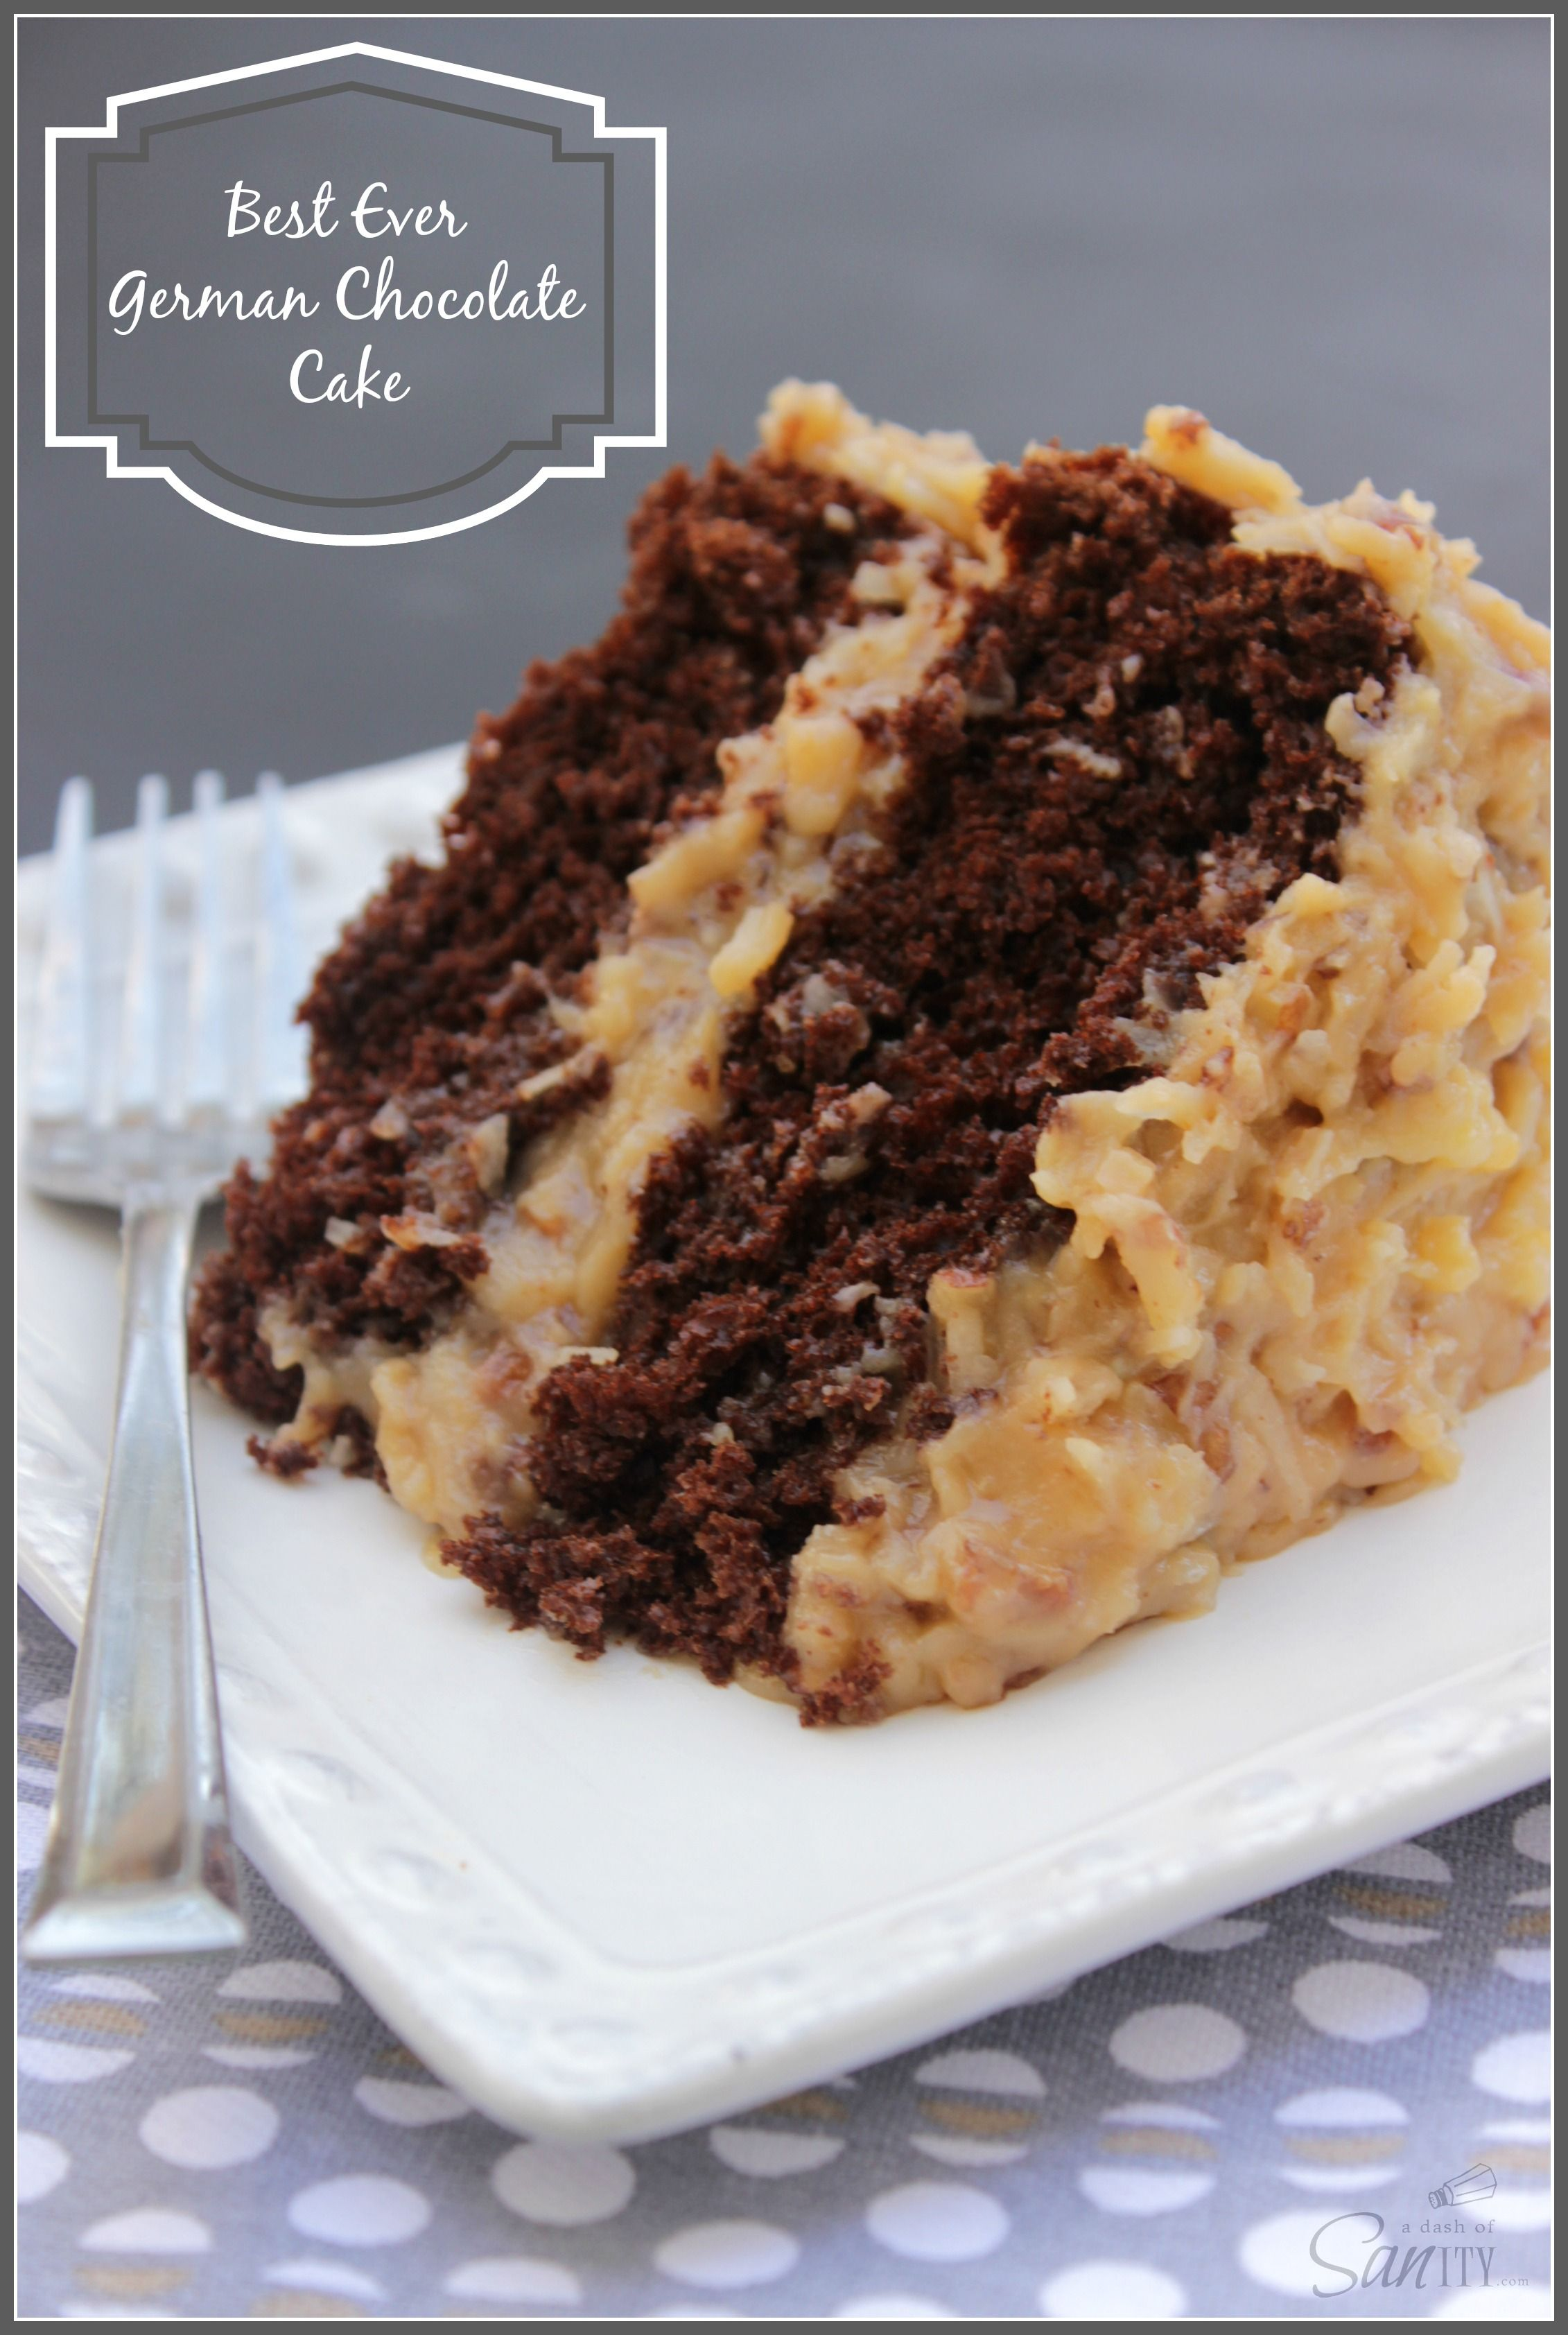 Best ever german chocolate cake recipe german chocolate gerrman chocolate cake moist chocolate cake and traditional coconut pecan frosting layer forumfinder Choice Image